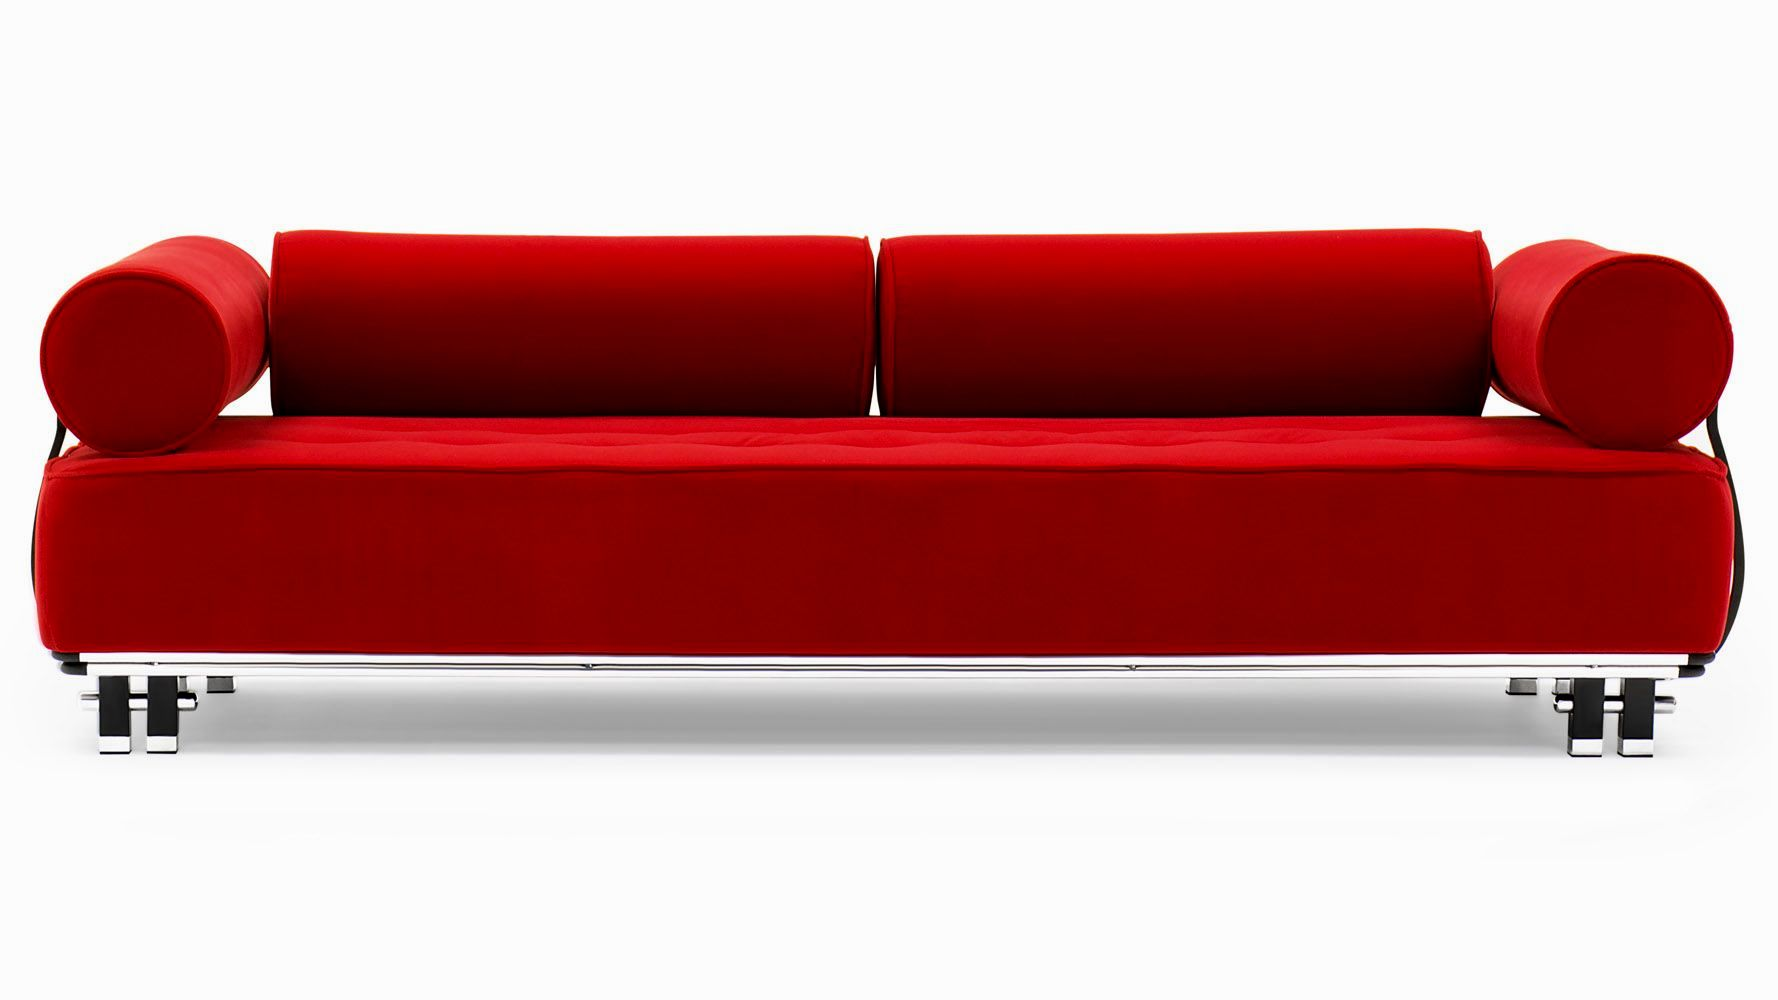 inspirational chesterfield sofa leather inspiration-Lovely Chesterfield sofa Leather Concept